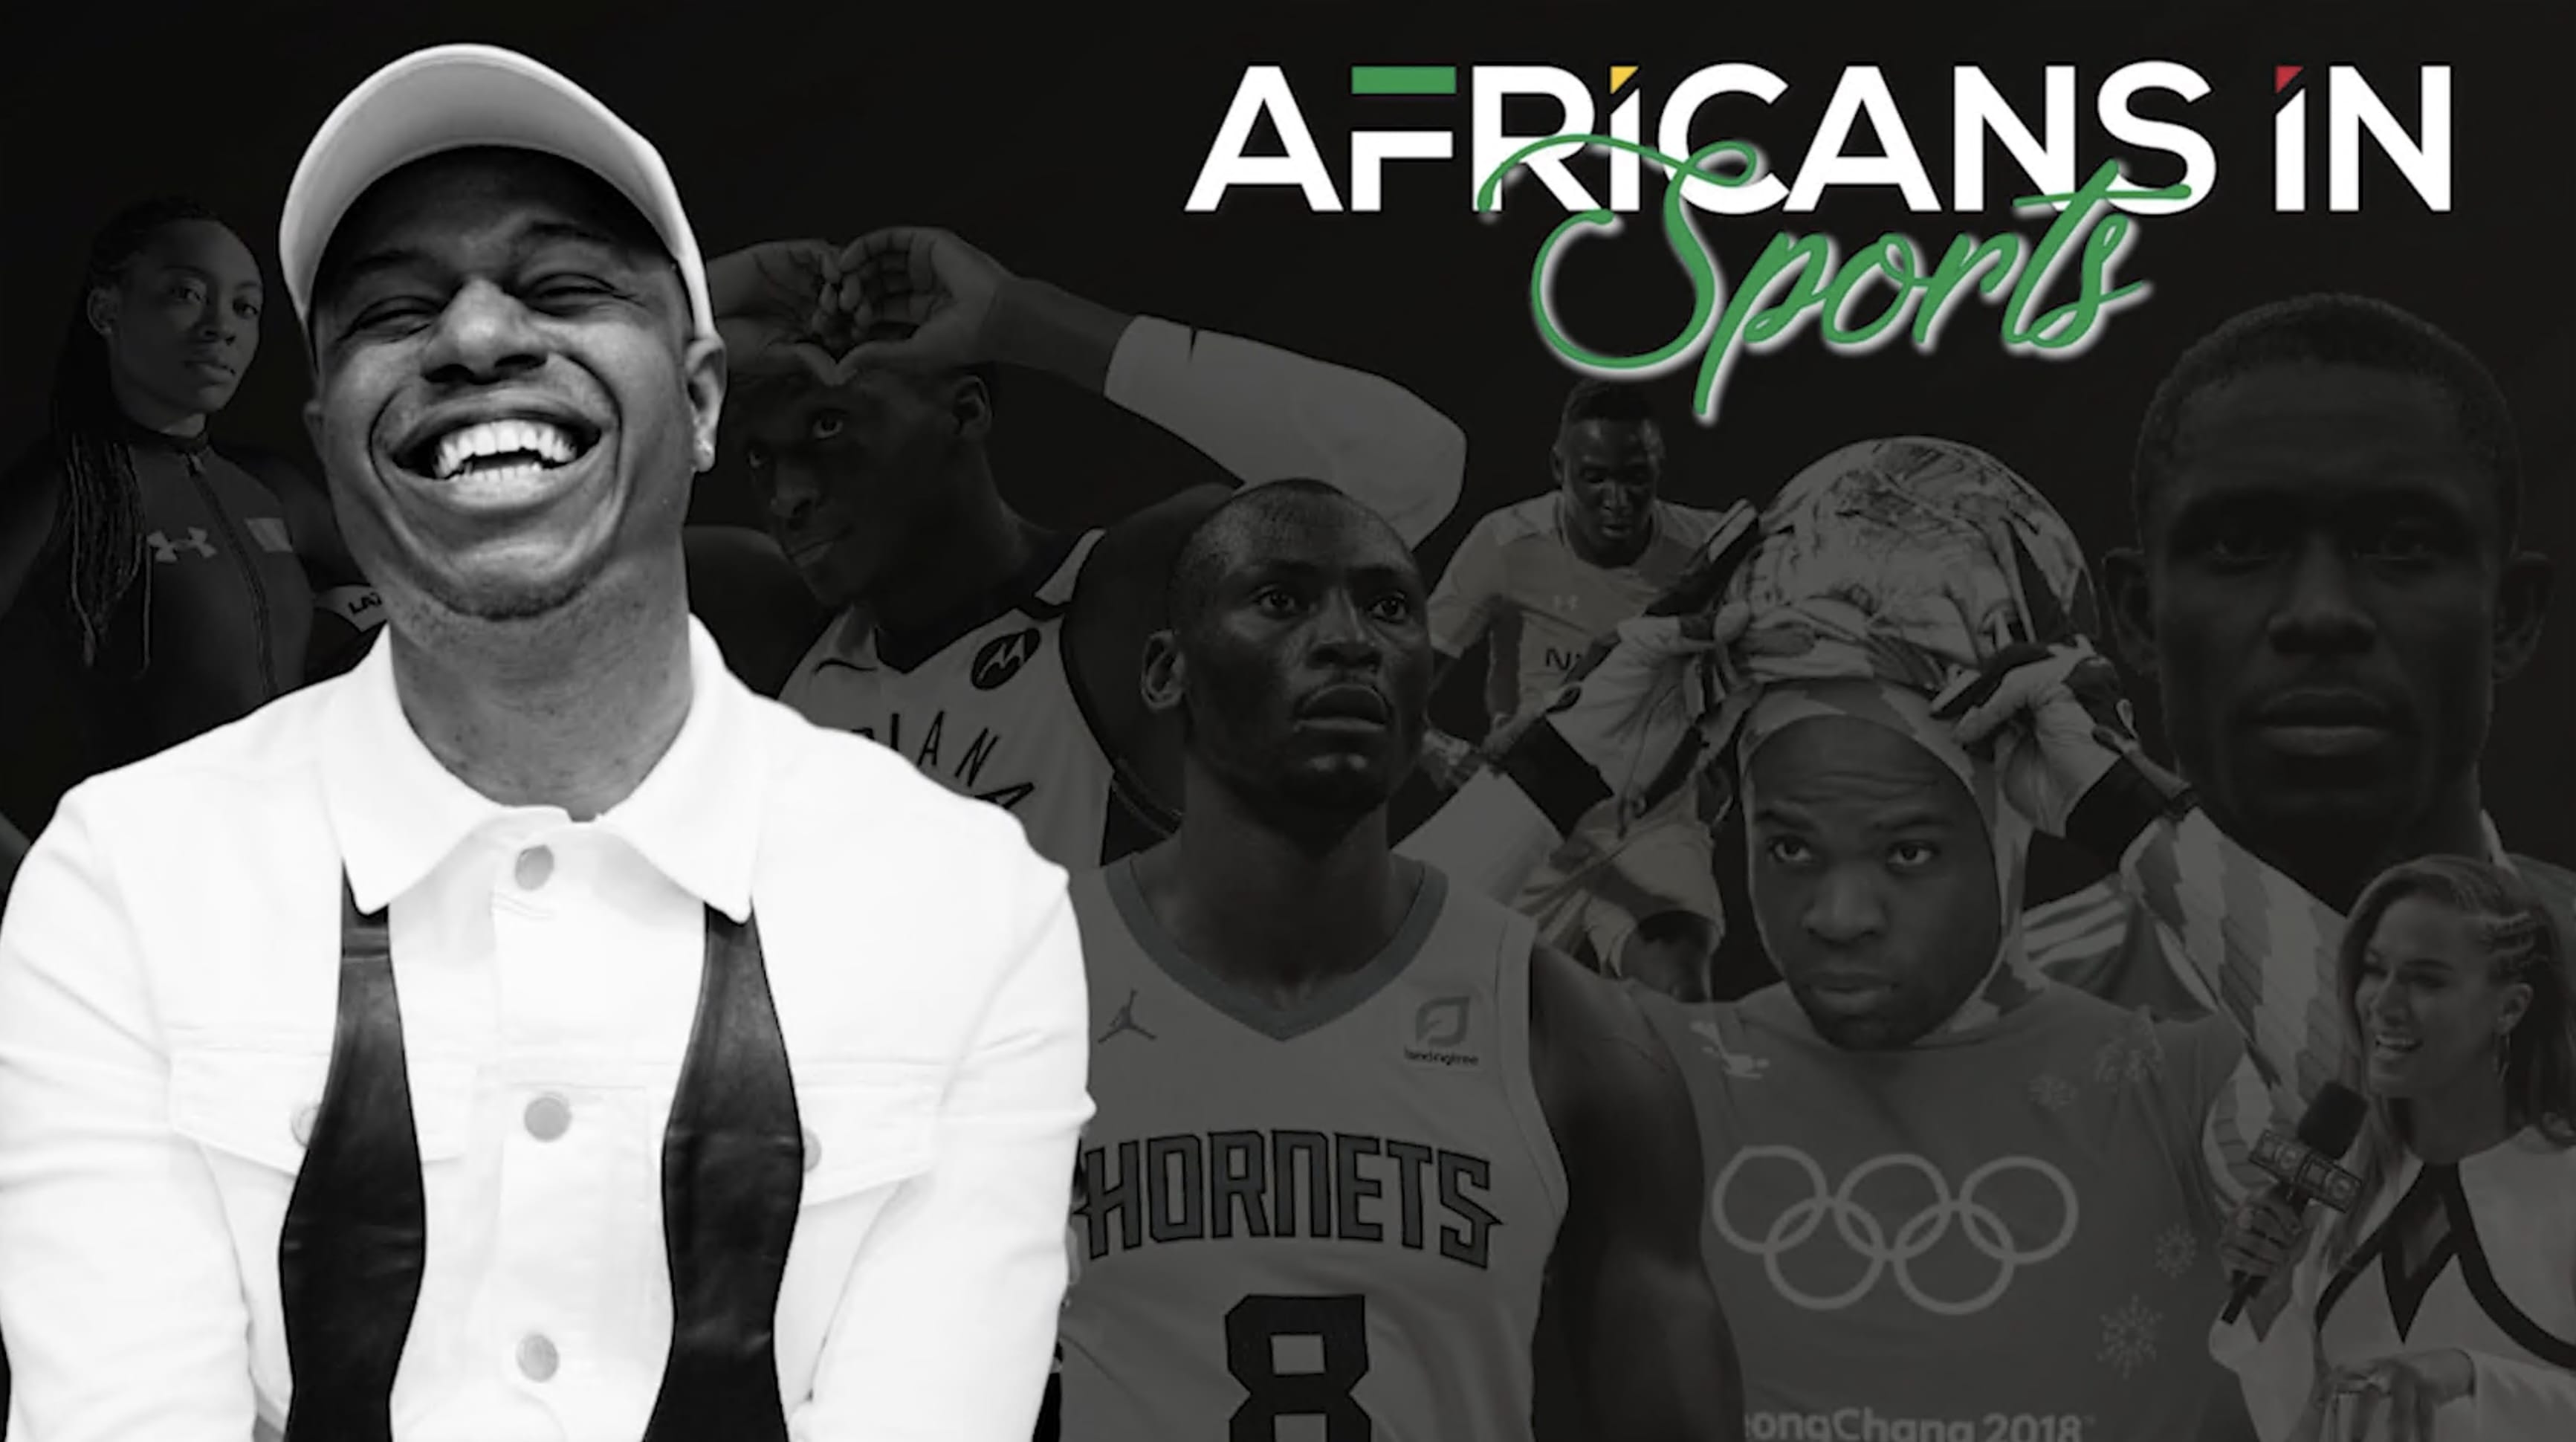 Africans in Sport